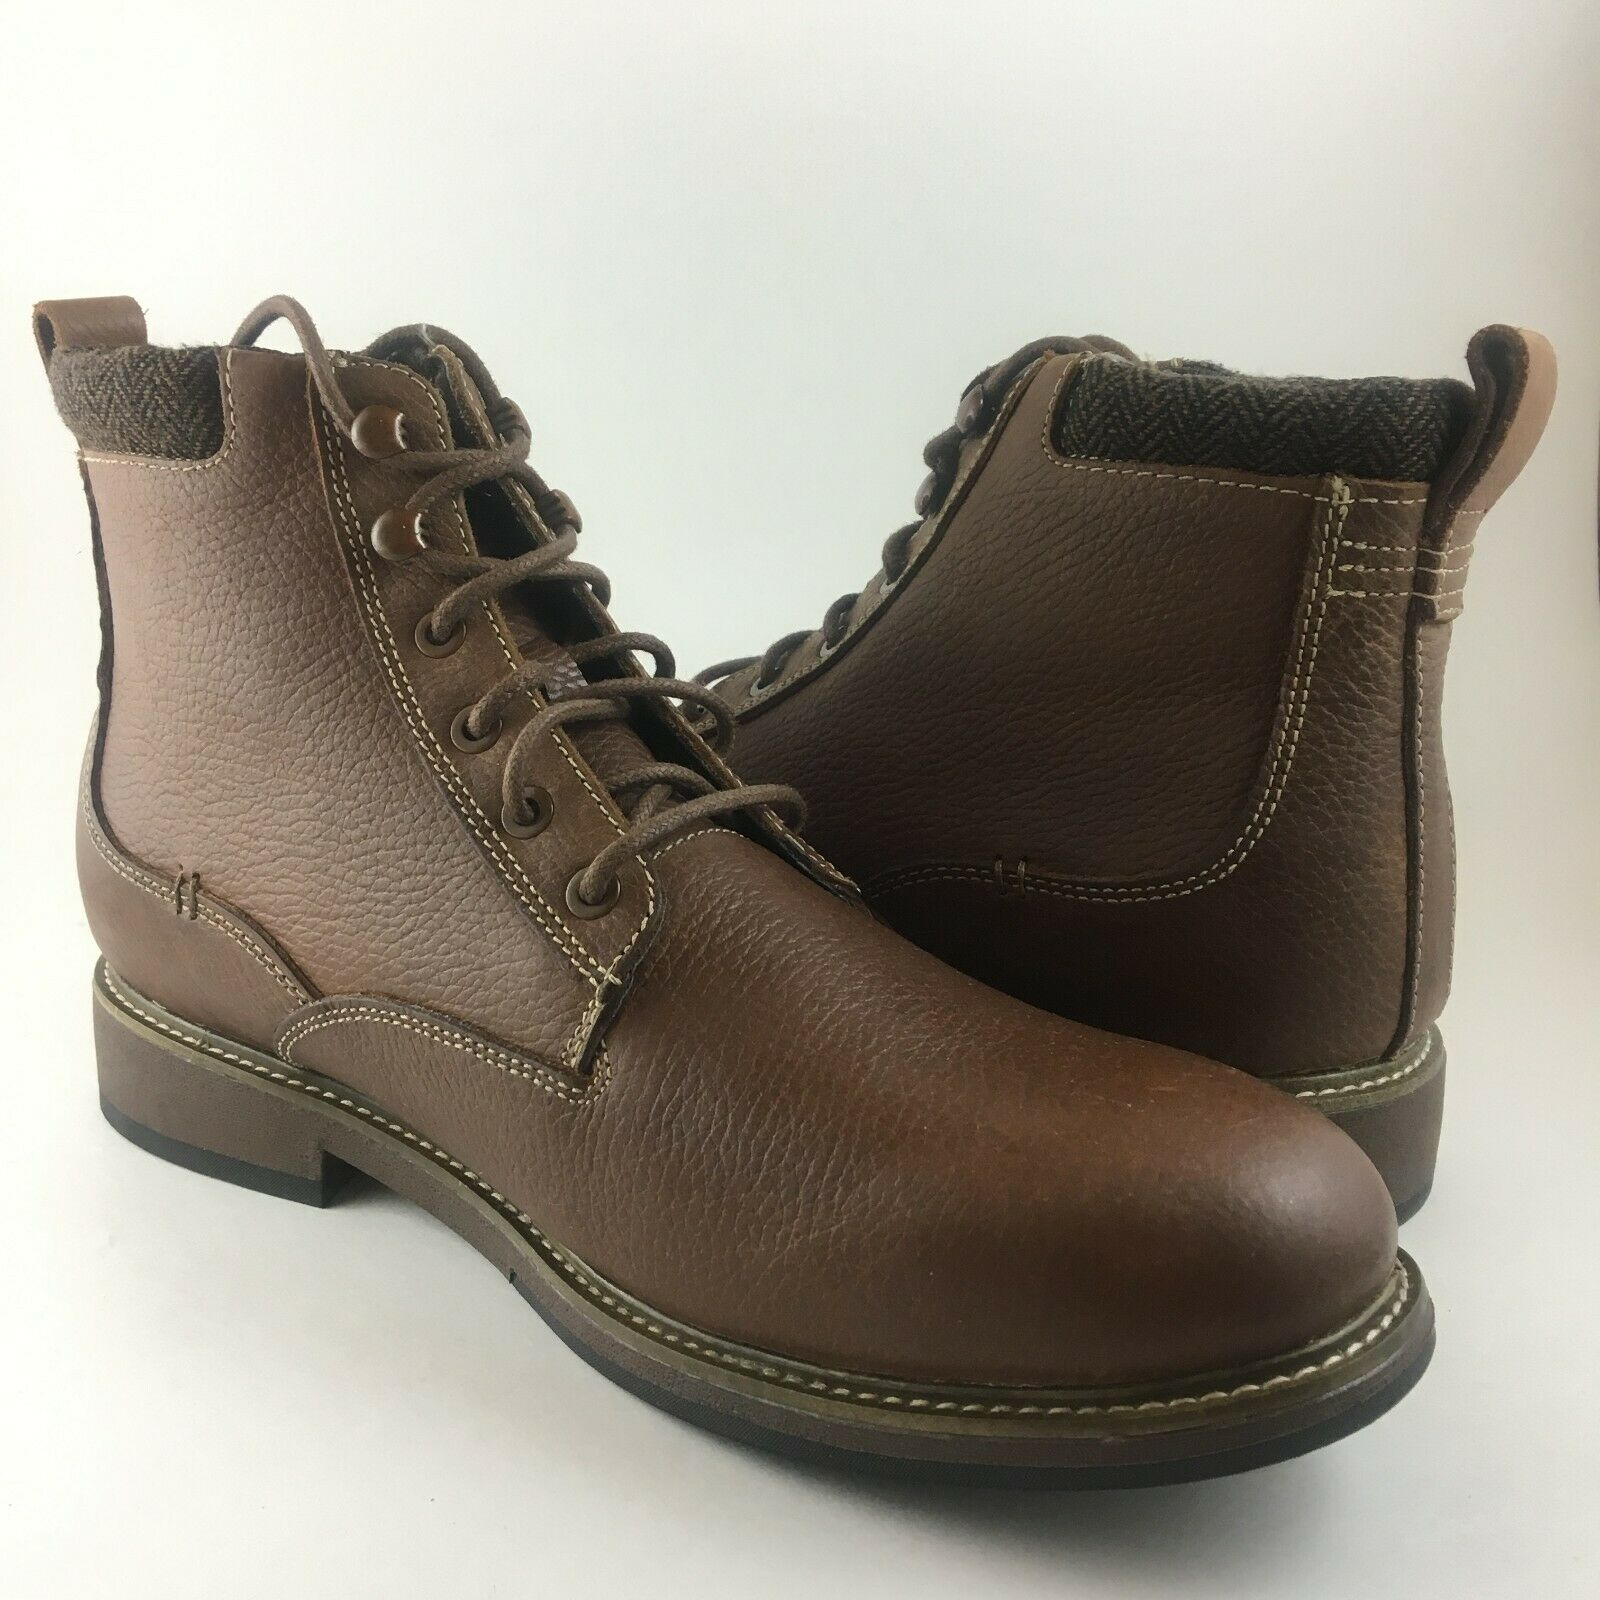 Dr. Scholl's Chief Leather Boot MENS SIZE 12 M BROWN NEW MSRP